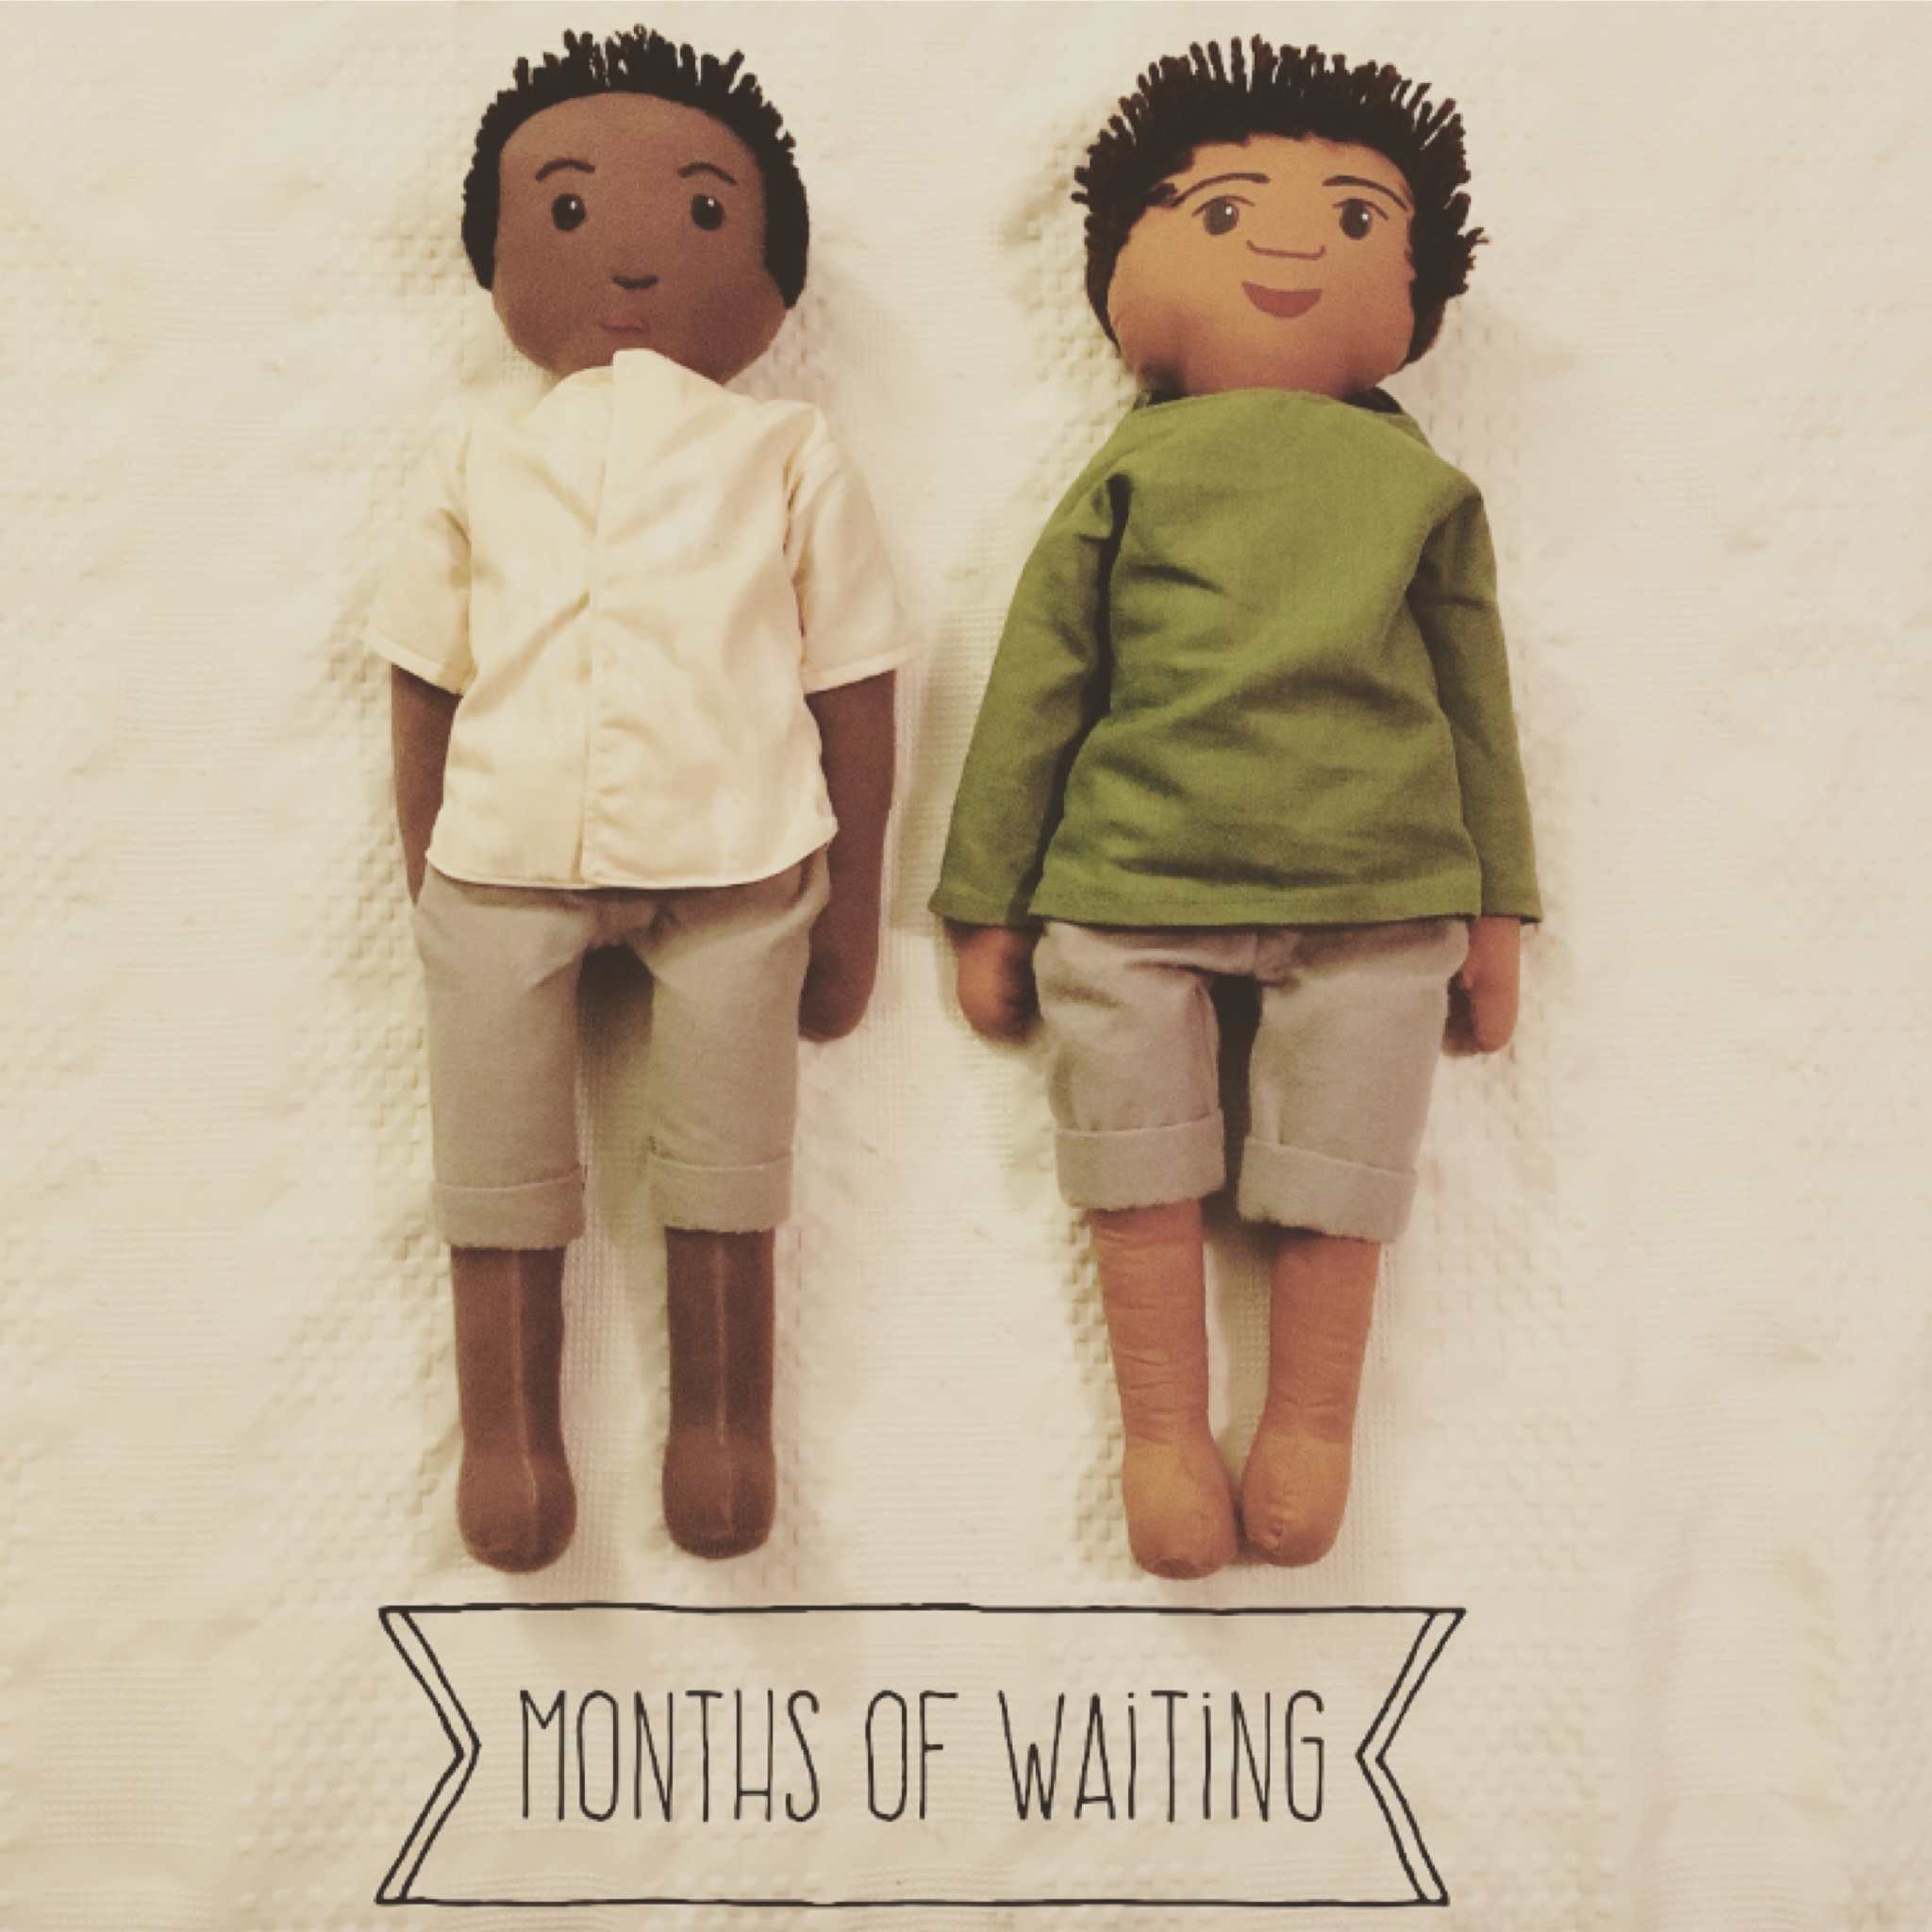 Trying to be a little more creative with the waiting photos... get it? Made the dolls an 11. These dolls were made by my friend Elizabeth Swing, who graciously let me share her story on the blog today. You can see and purchase all of her amazing creations (my current favorite is the mole with a scarf) at: https://www.etsy.com/shop/emergolde